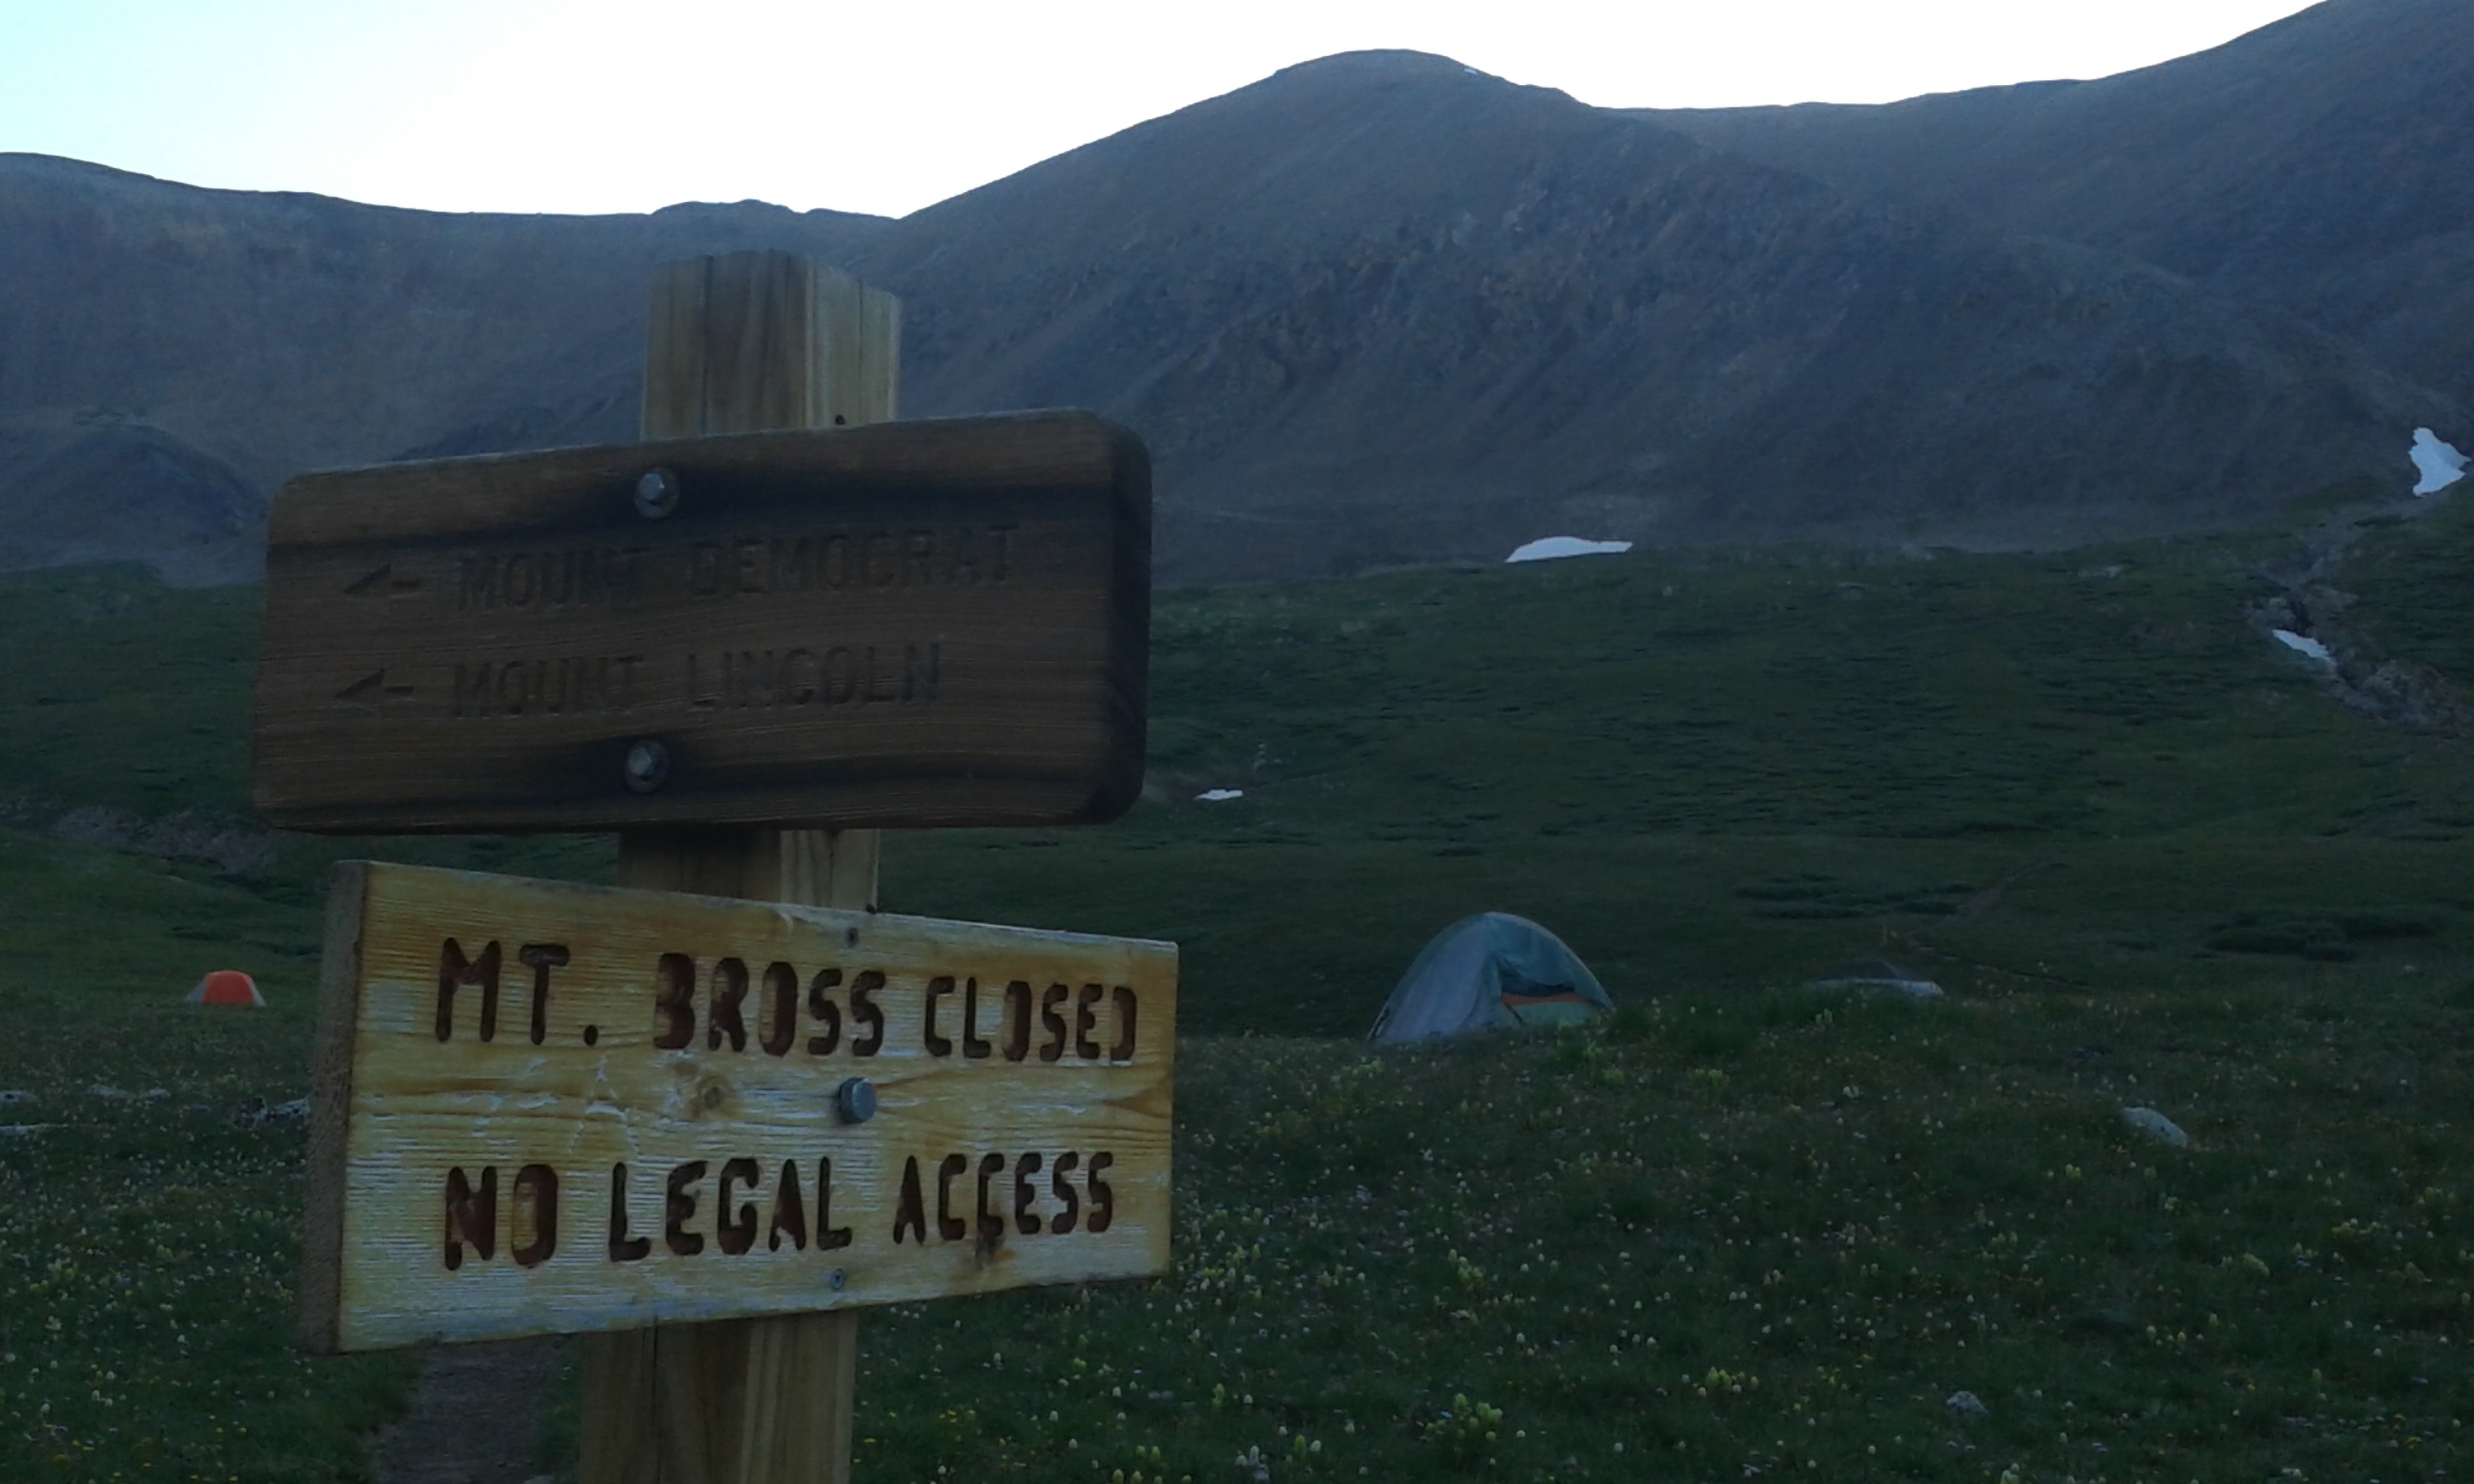 Filemt Bross Closed Sign At Kite Lake Wikimedia Commons